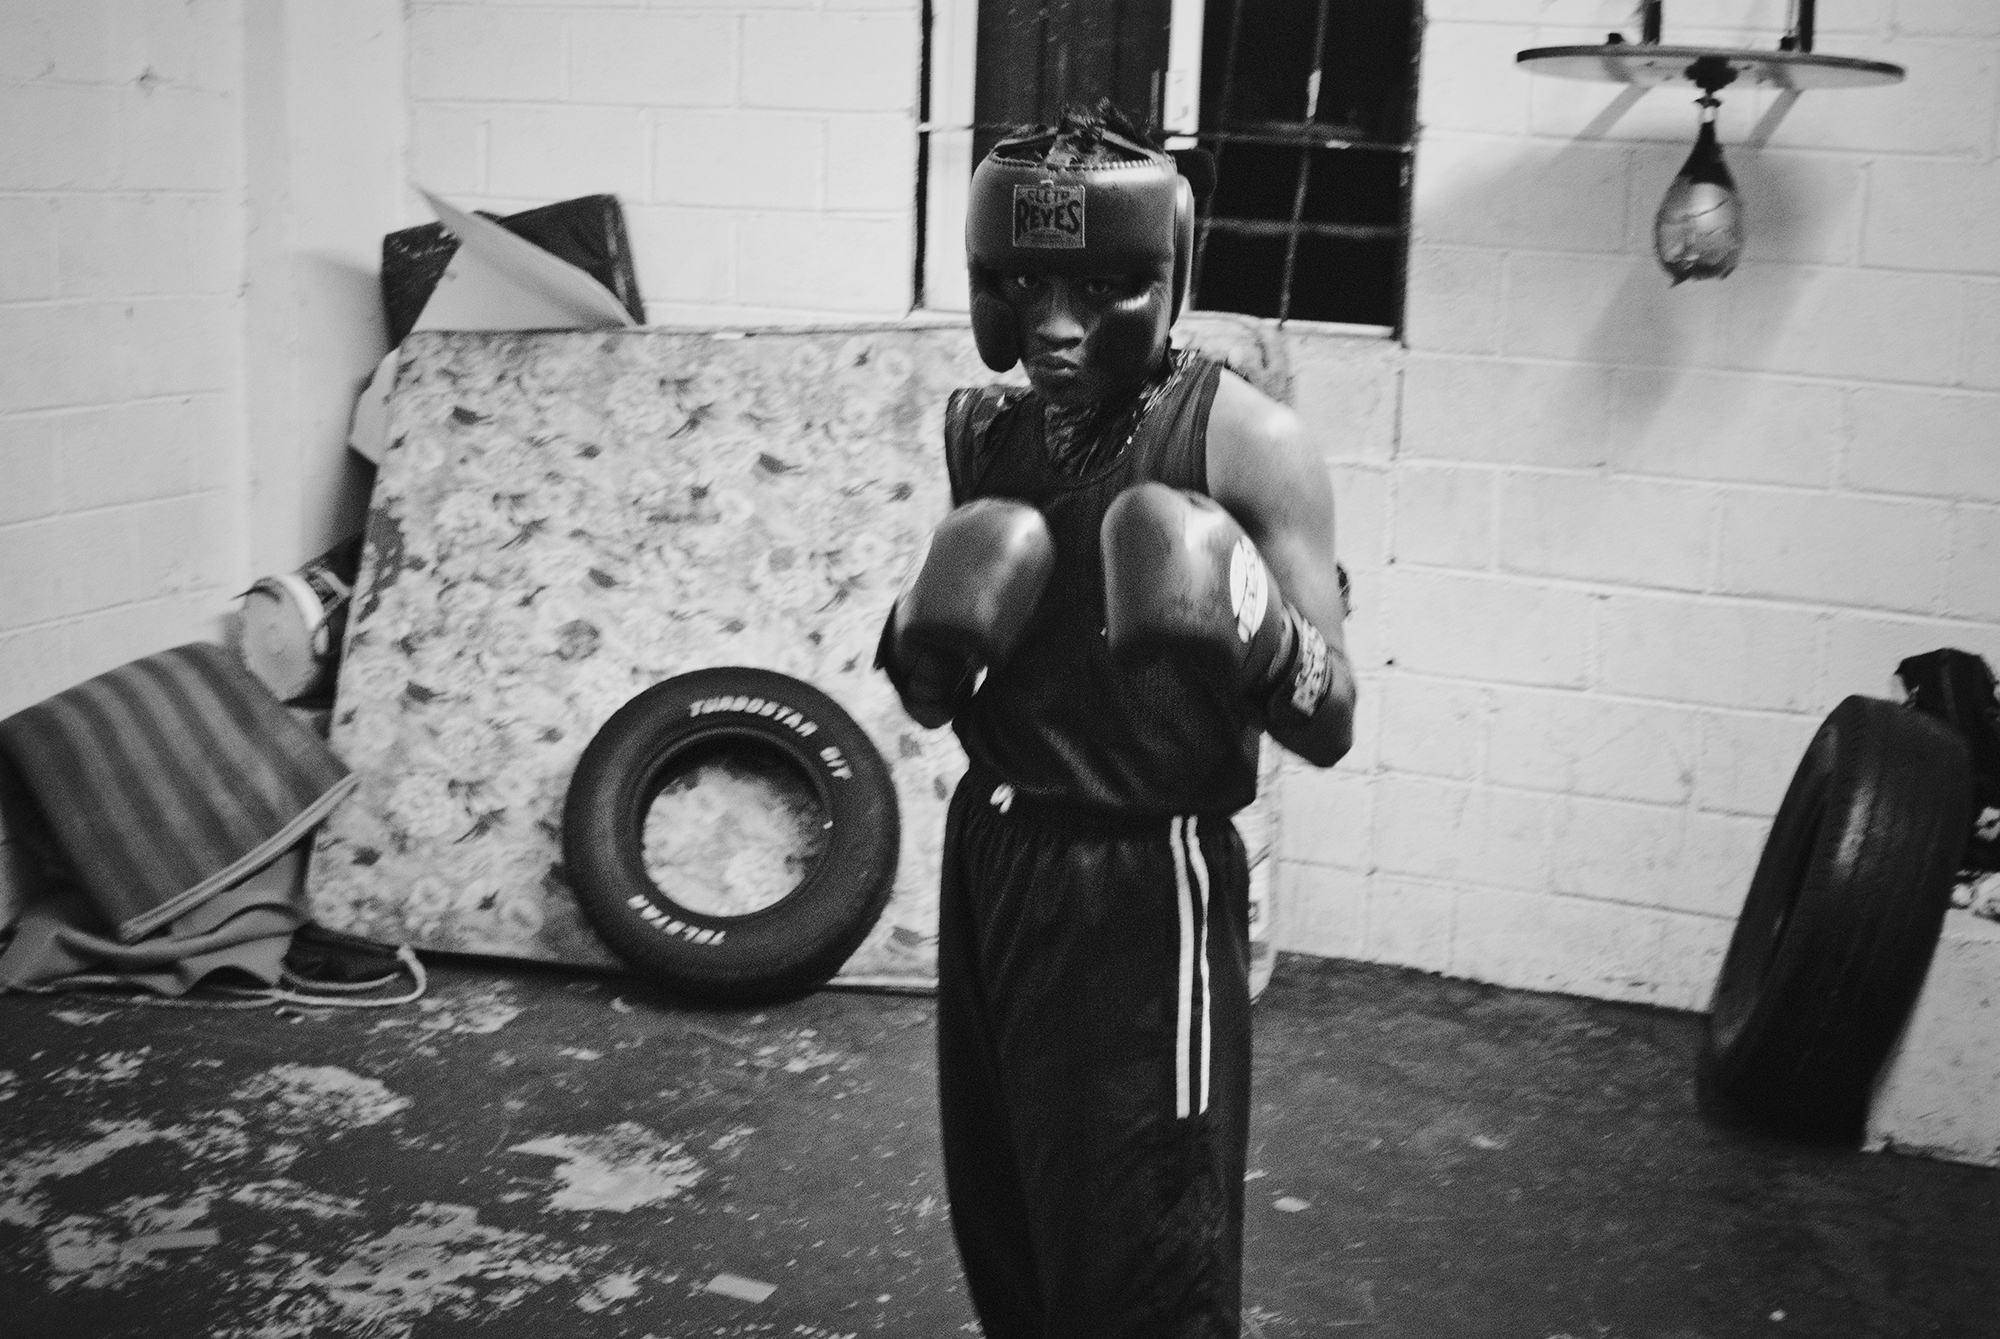 Young amateur boxer gives the stance in coach Cervantes's boxing gym.